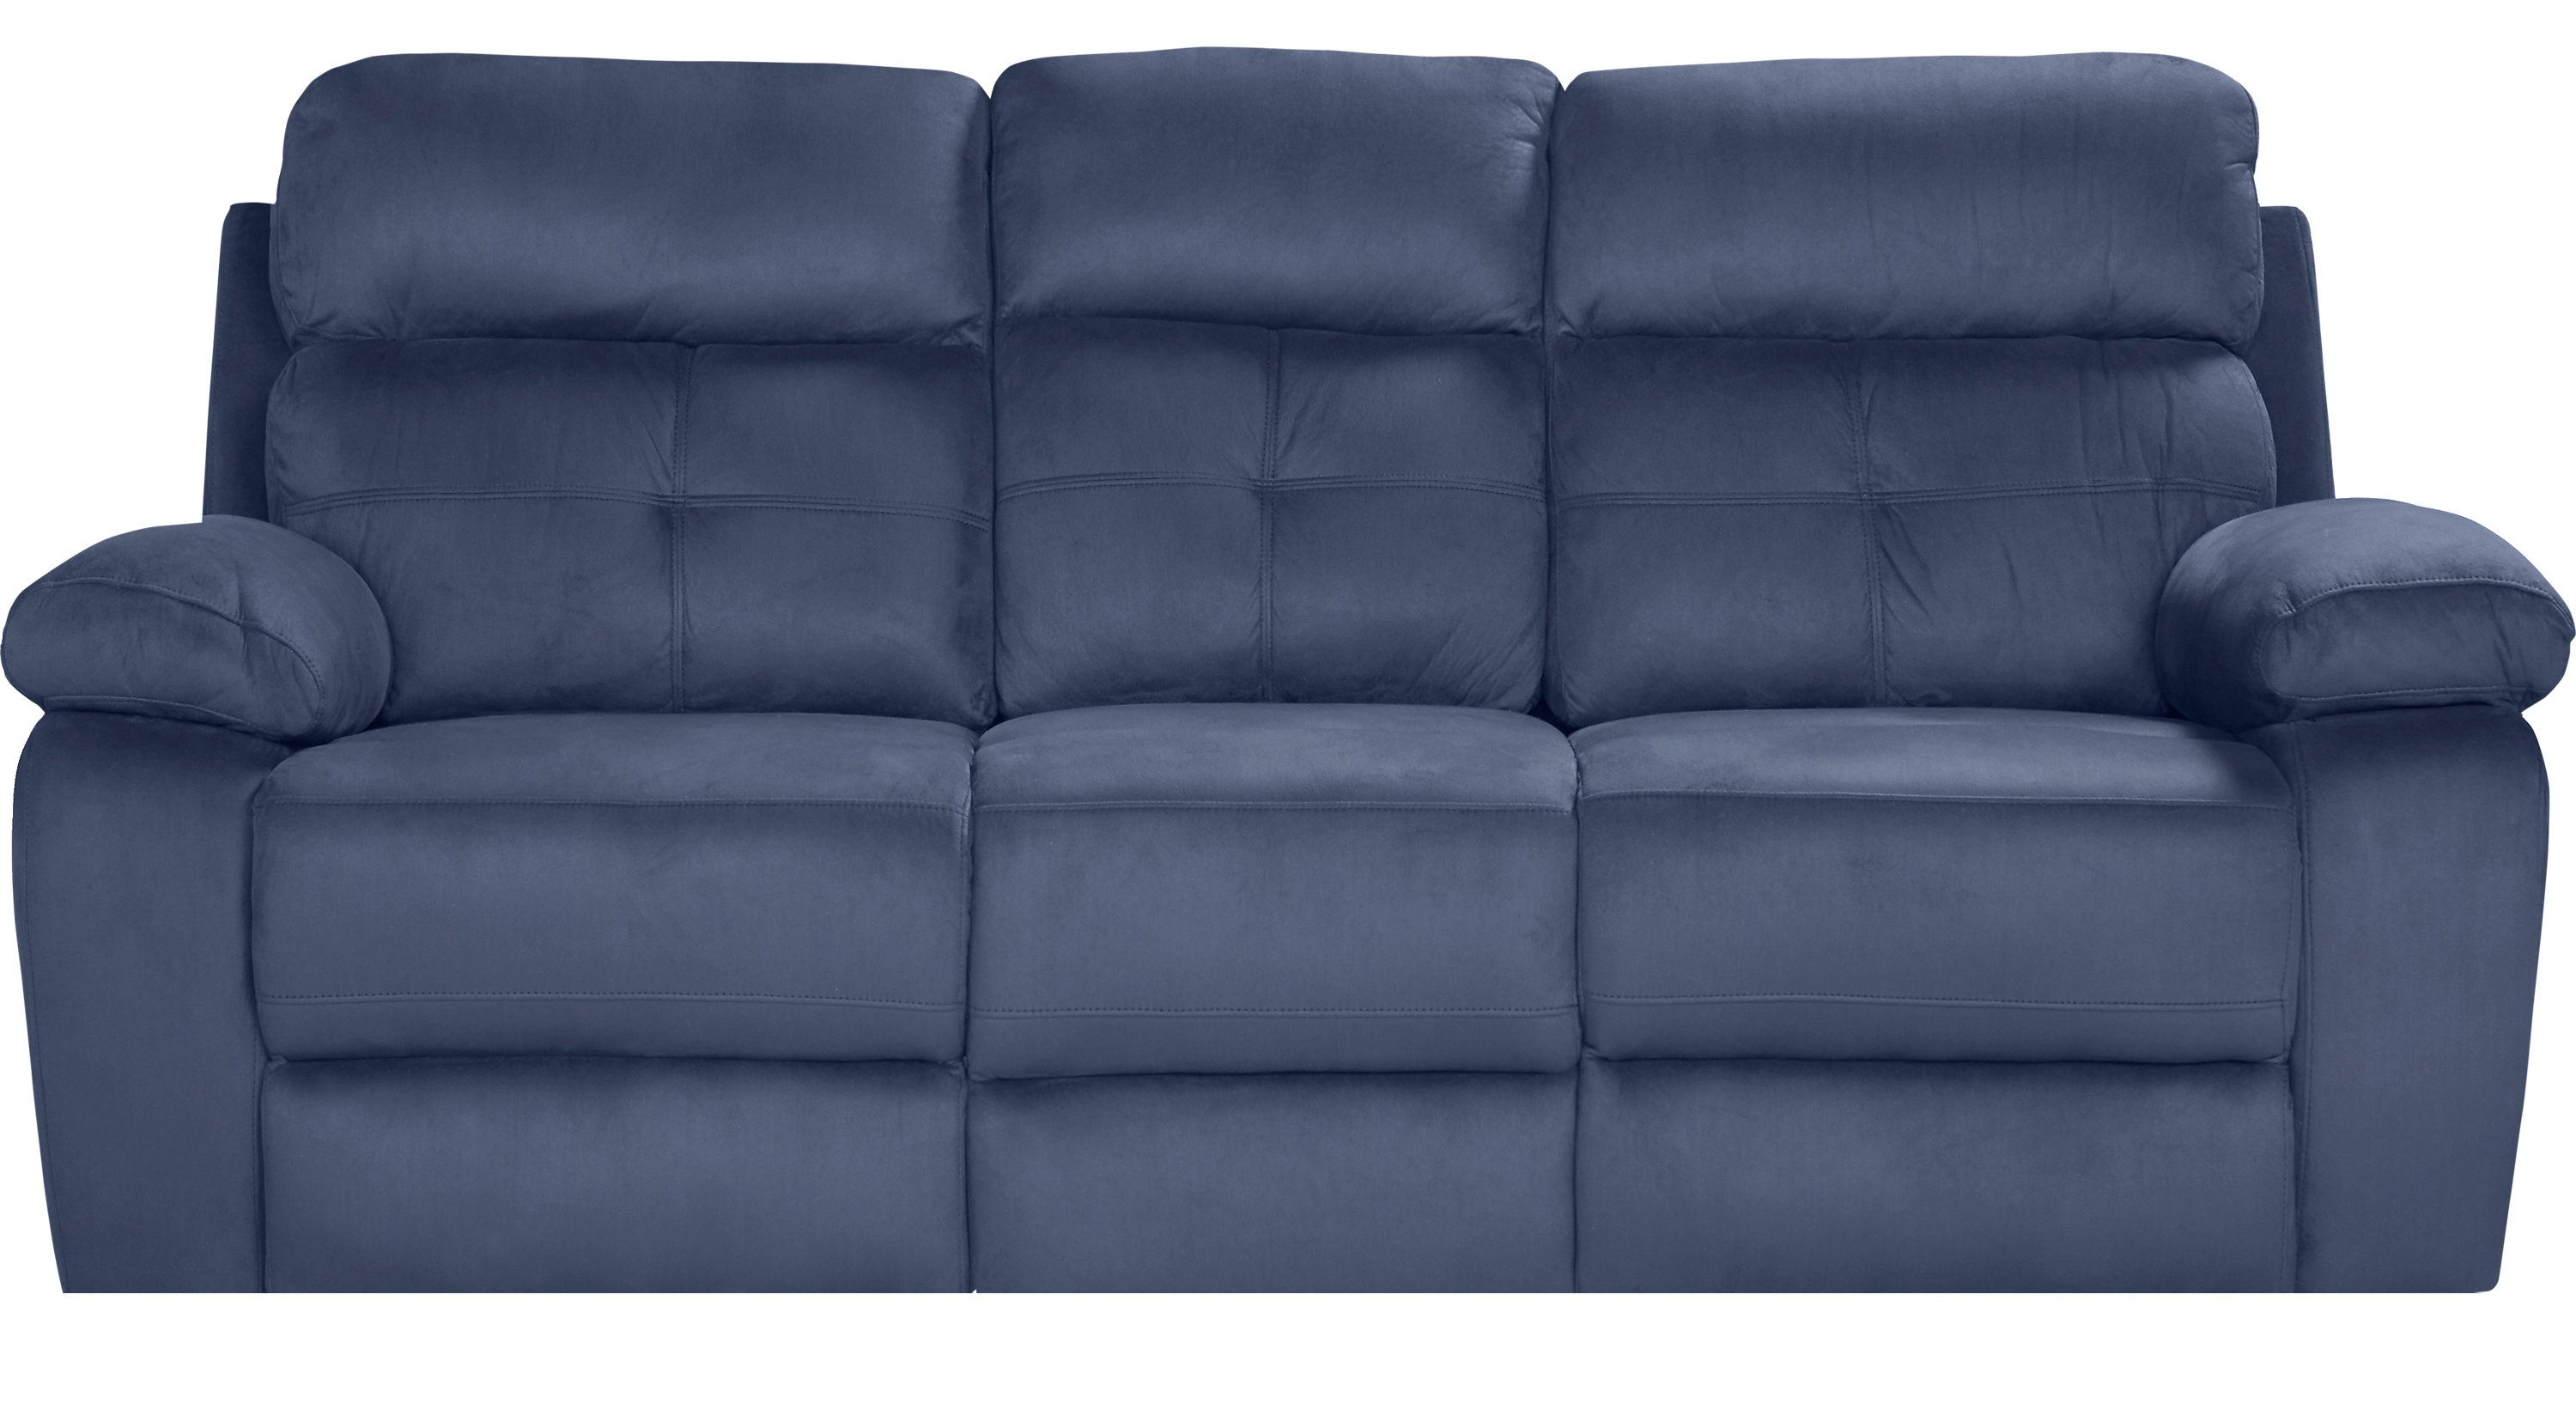 Sofas Rooms To Go Corinne Blue Reclining Sofa 11251054